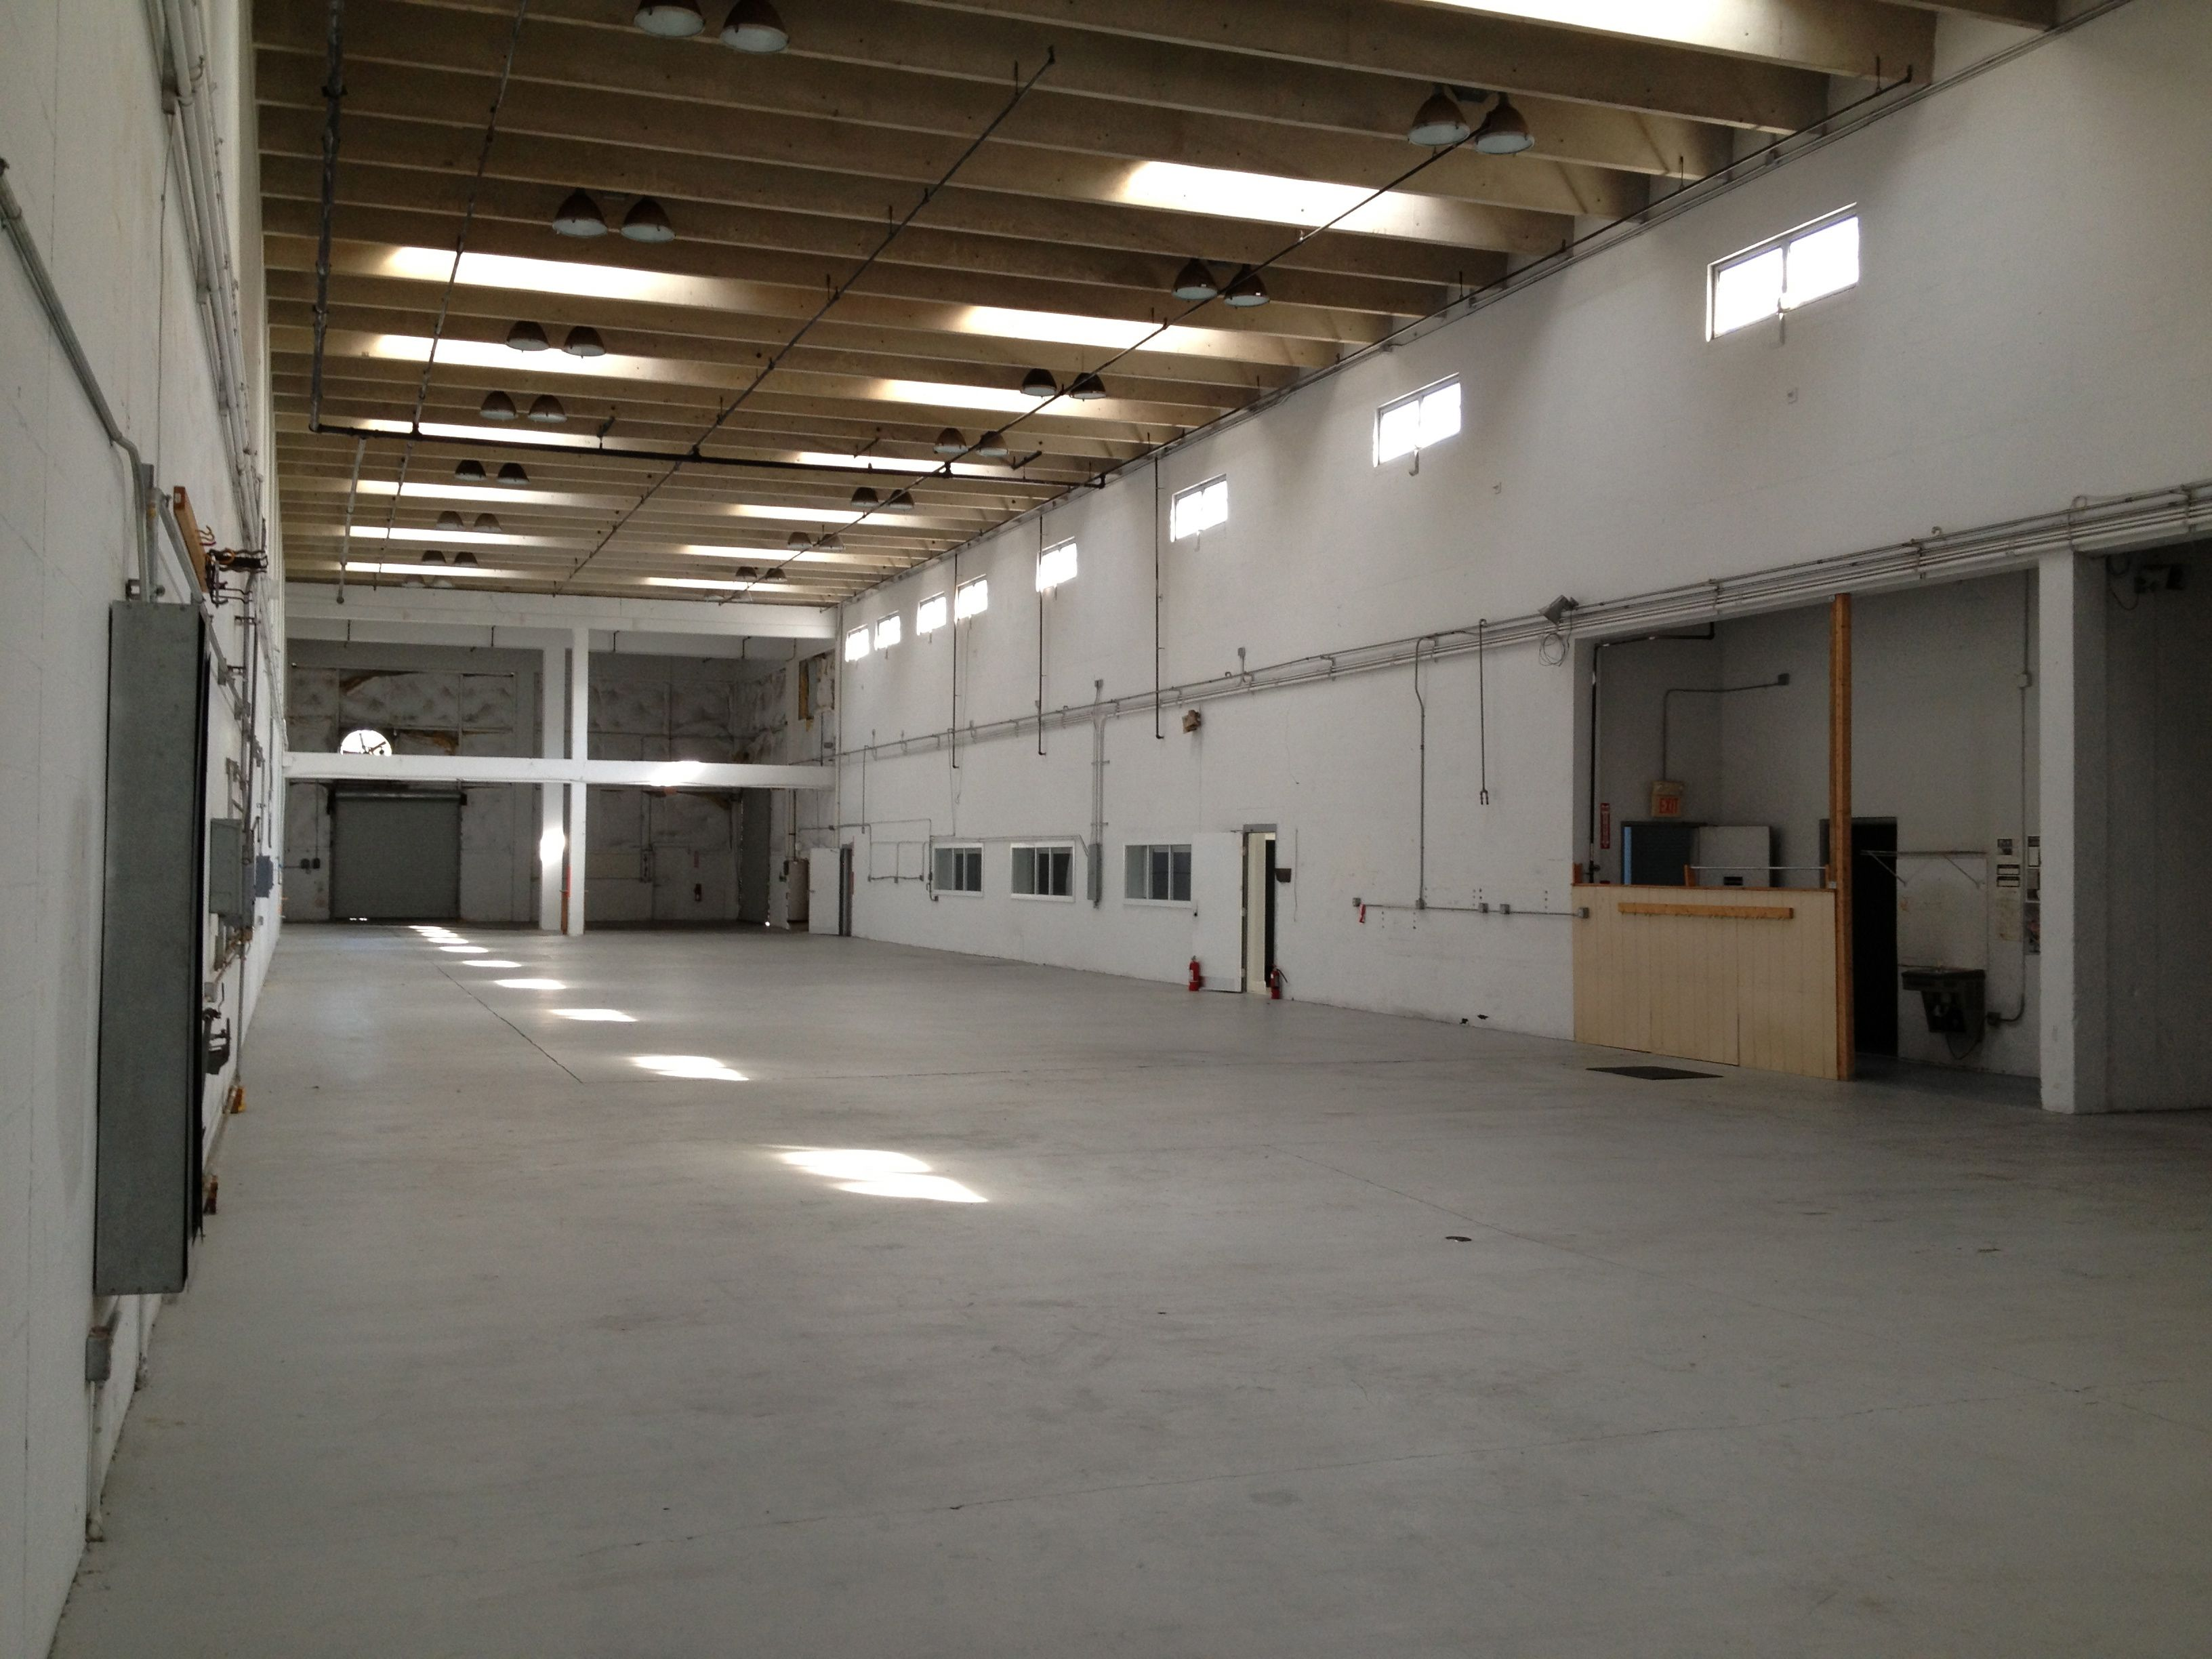 office and warehouse space. Very Clean Warehouse Space For Lease \u2013 30\u2033 Ceilings, Three 12\u2032 On-grade Doors 3,000 SF Of Nicely Finished Office $3.50/SF NNN Pass Throughs Are And S